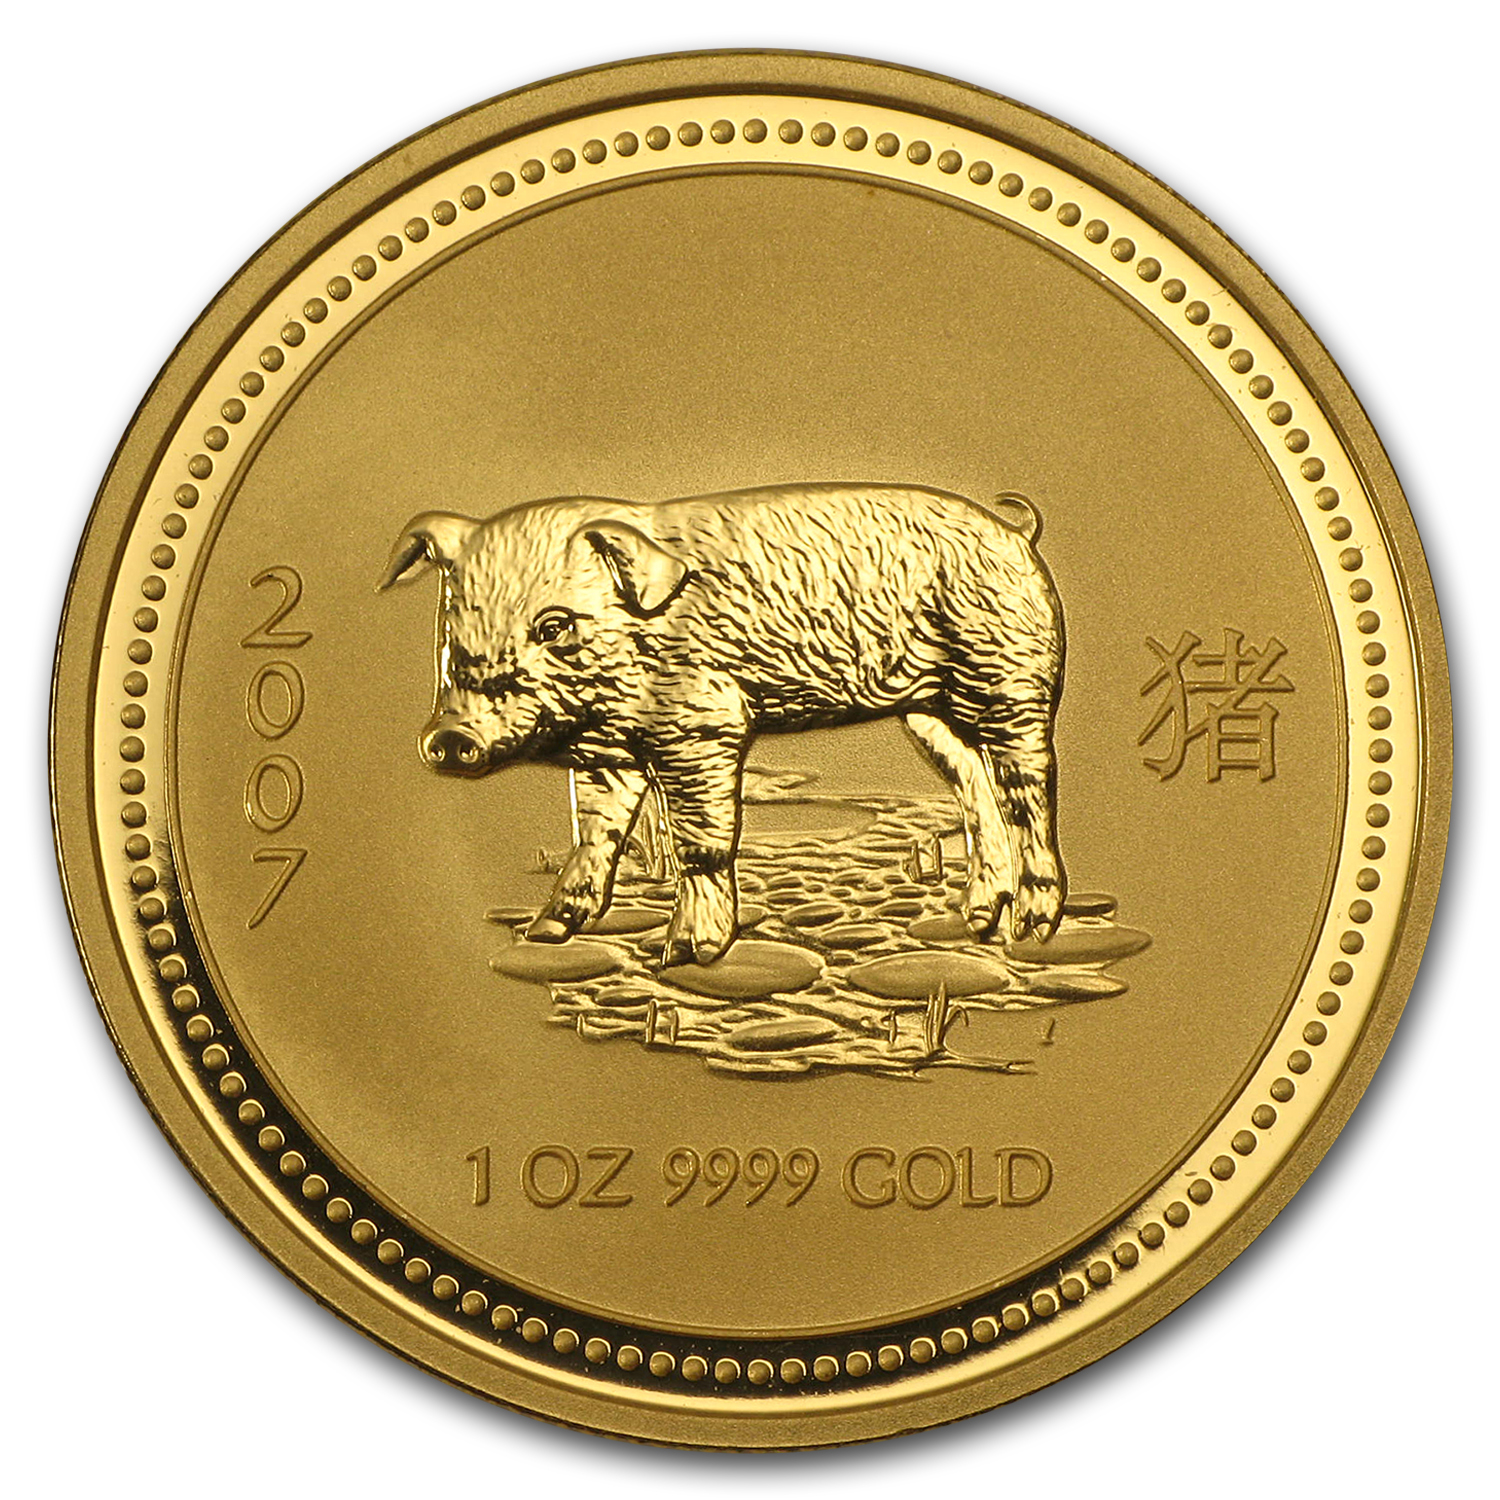 2007 1 oz Gold Year of the Pig Lunar Coin (Series I)